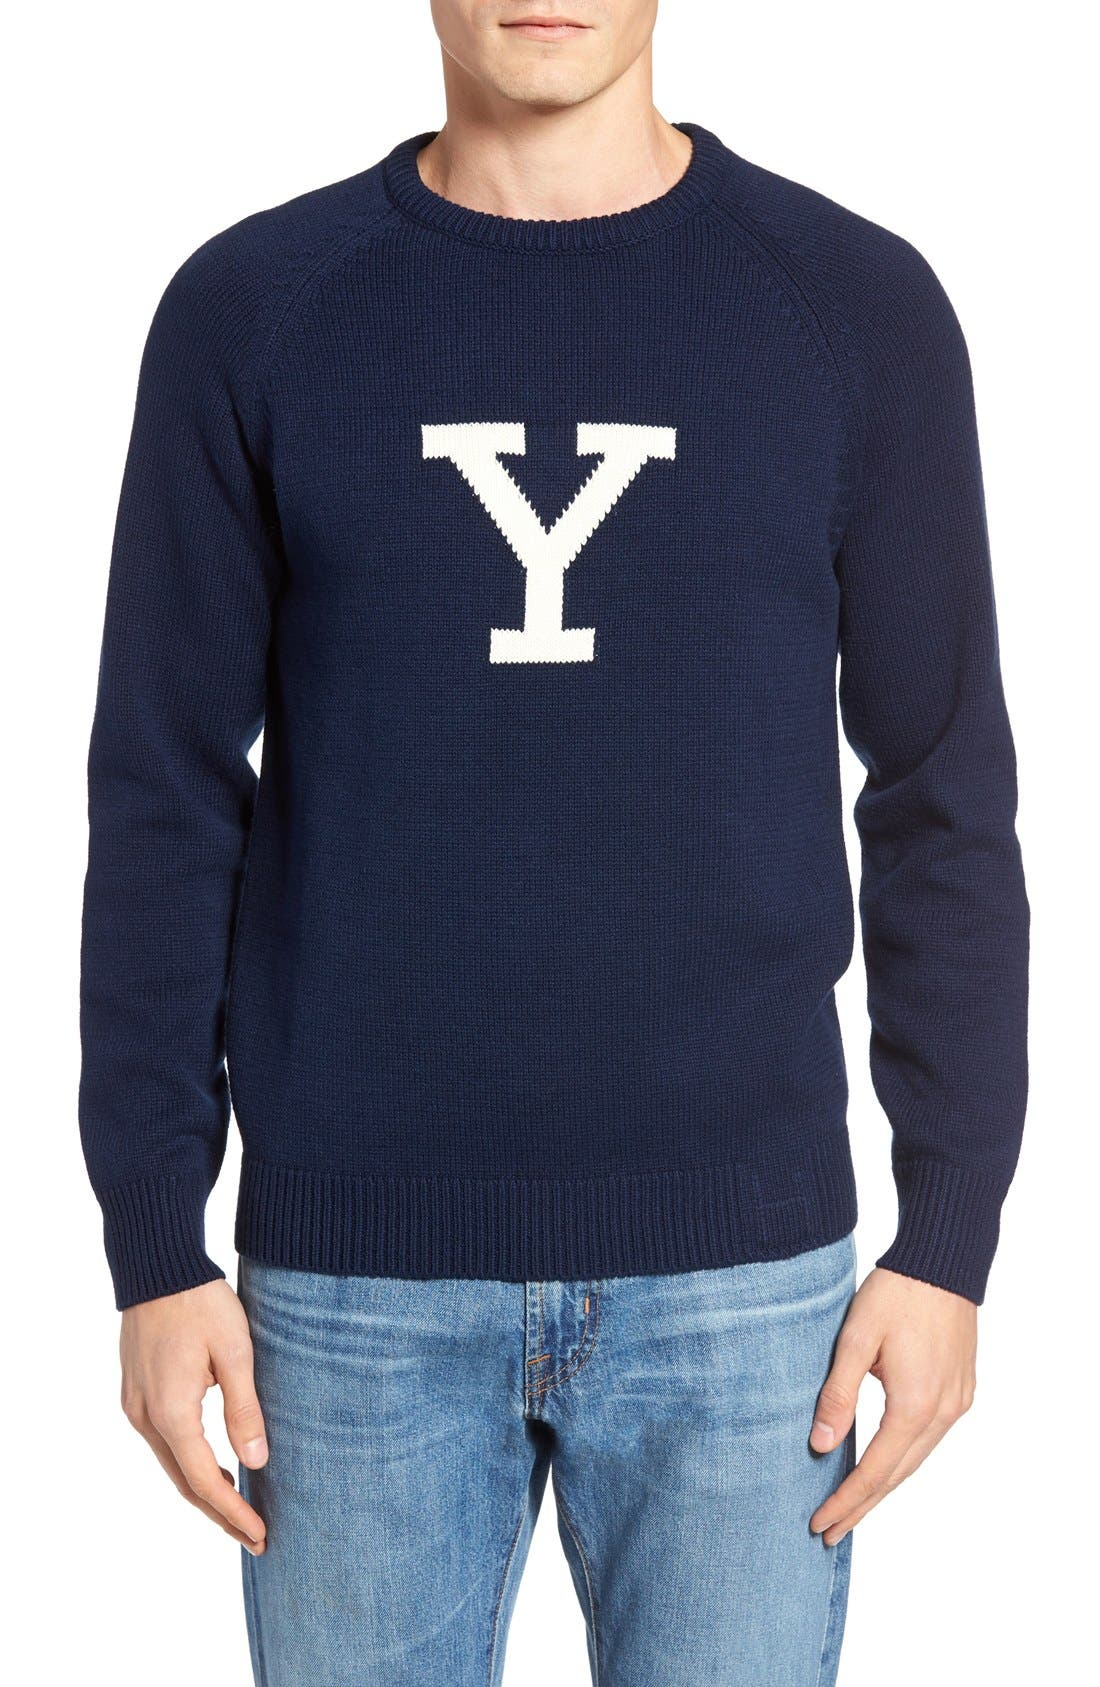 Yale Heritage Sweater,                             Main thumbnail 1, color,                             400